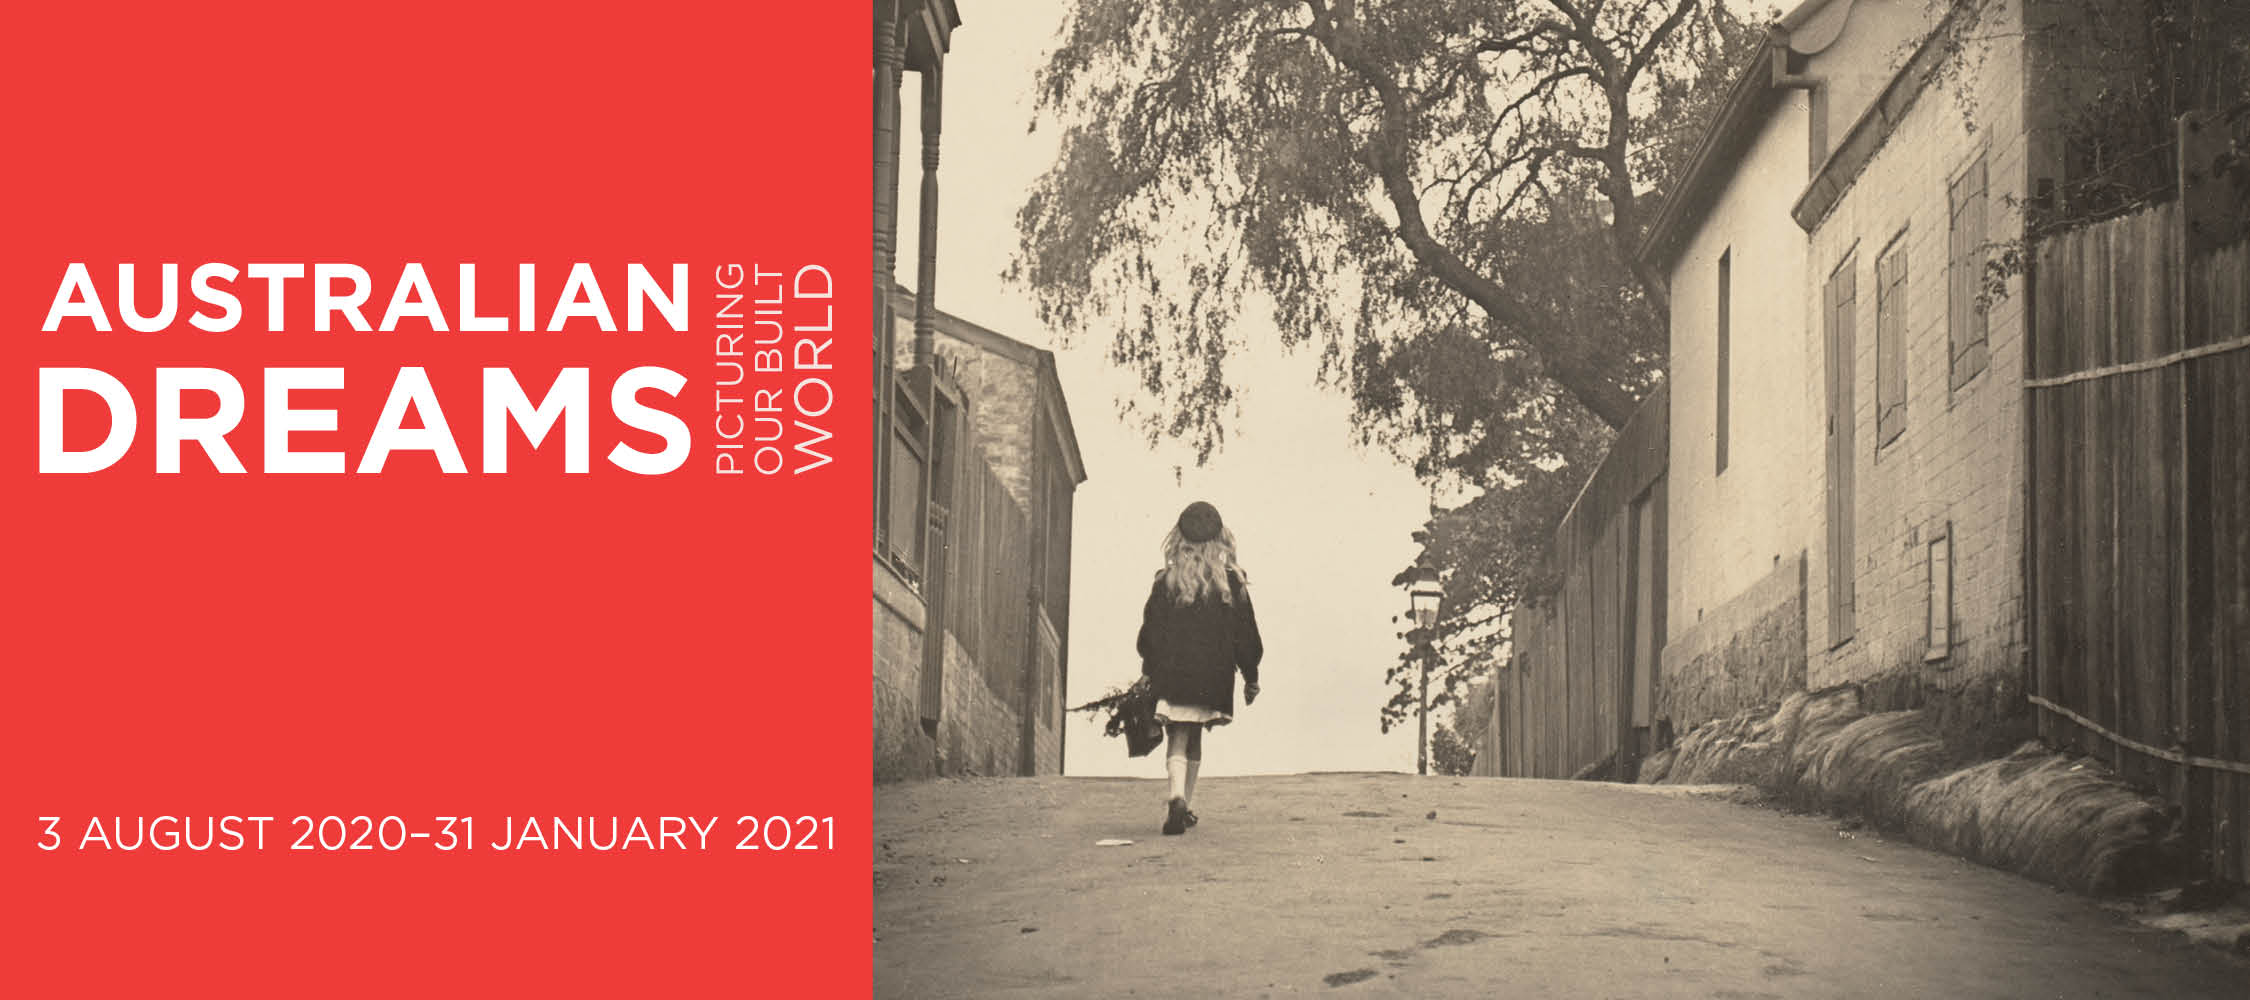 Australian Dreams: Picturing our Built World exhibition open 3 August 2020 to 31 January 2021